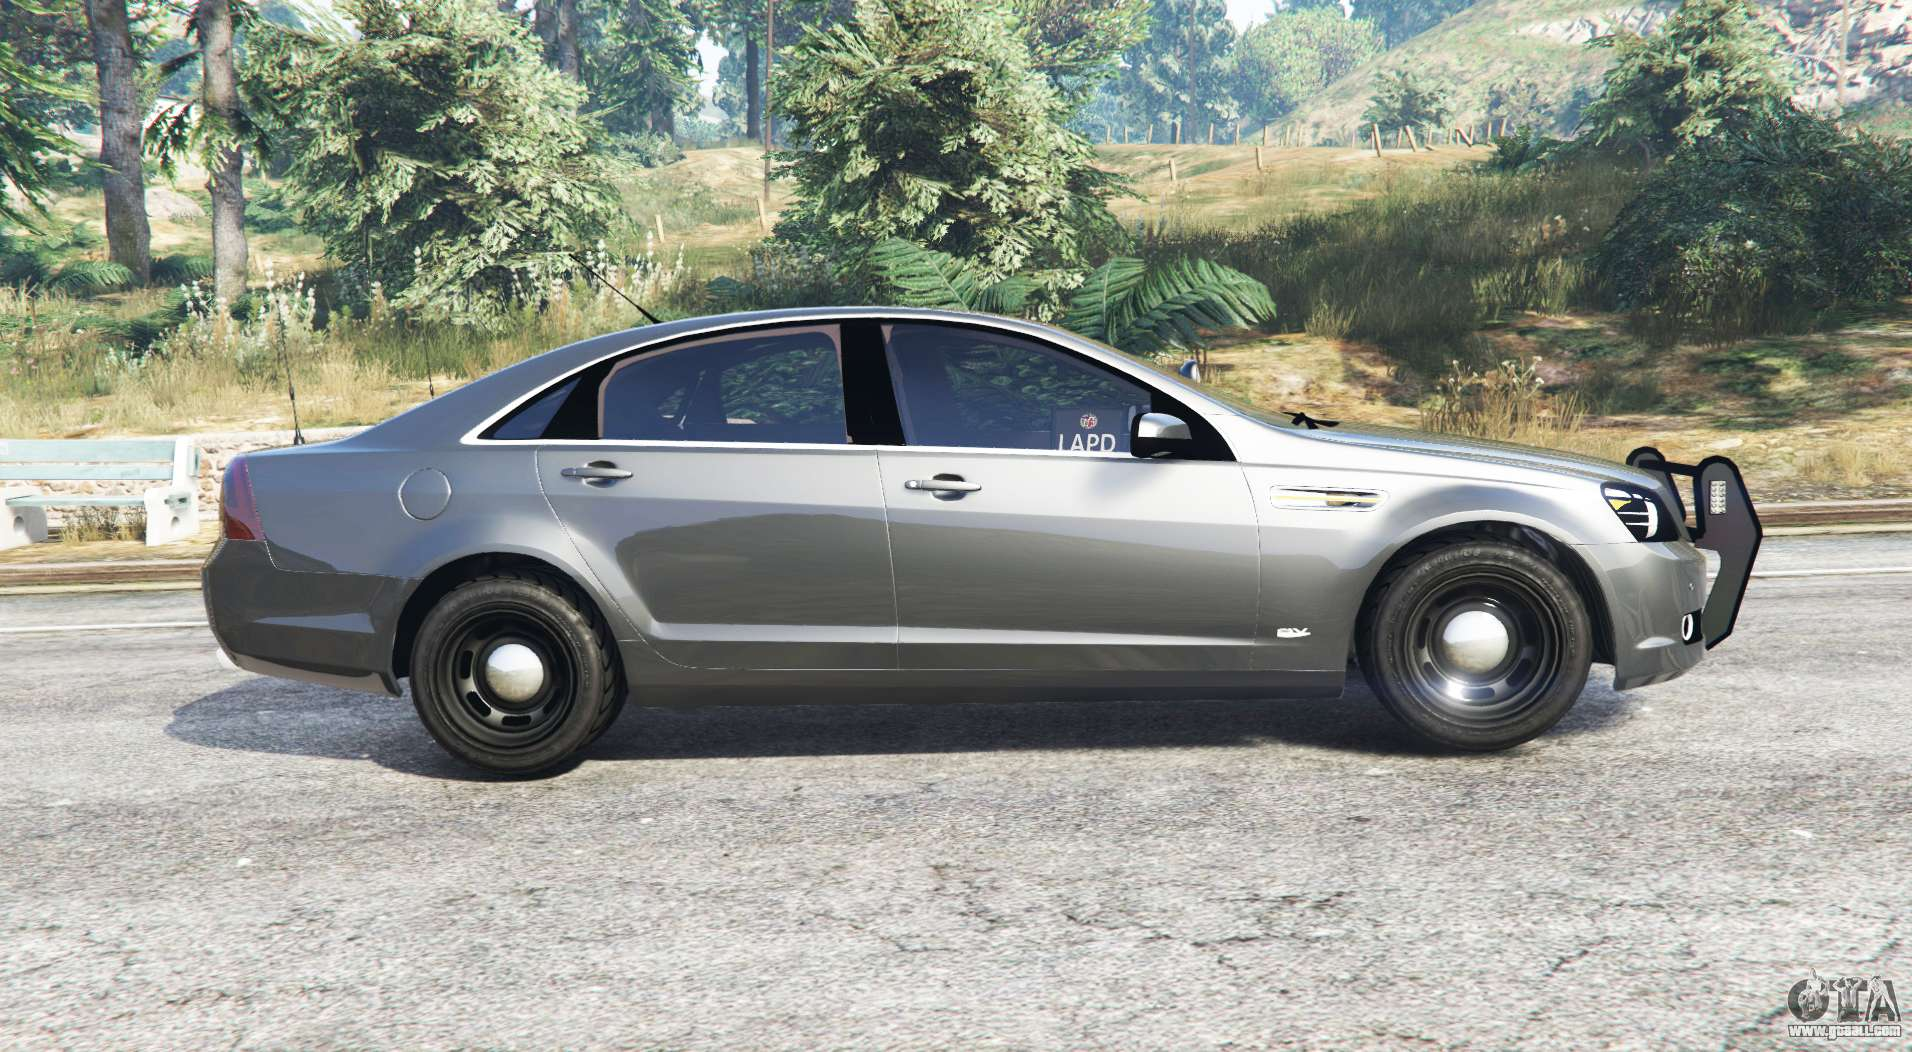 Chevrolet Caprice Unmarked Police v2 0 [replace] for GTA 5